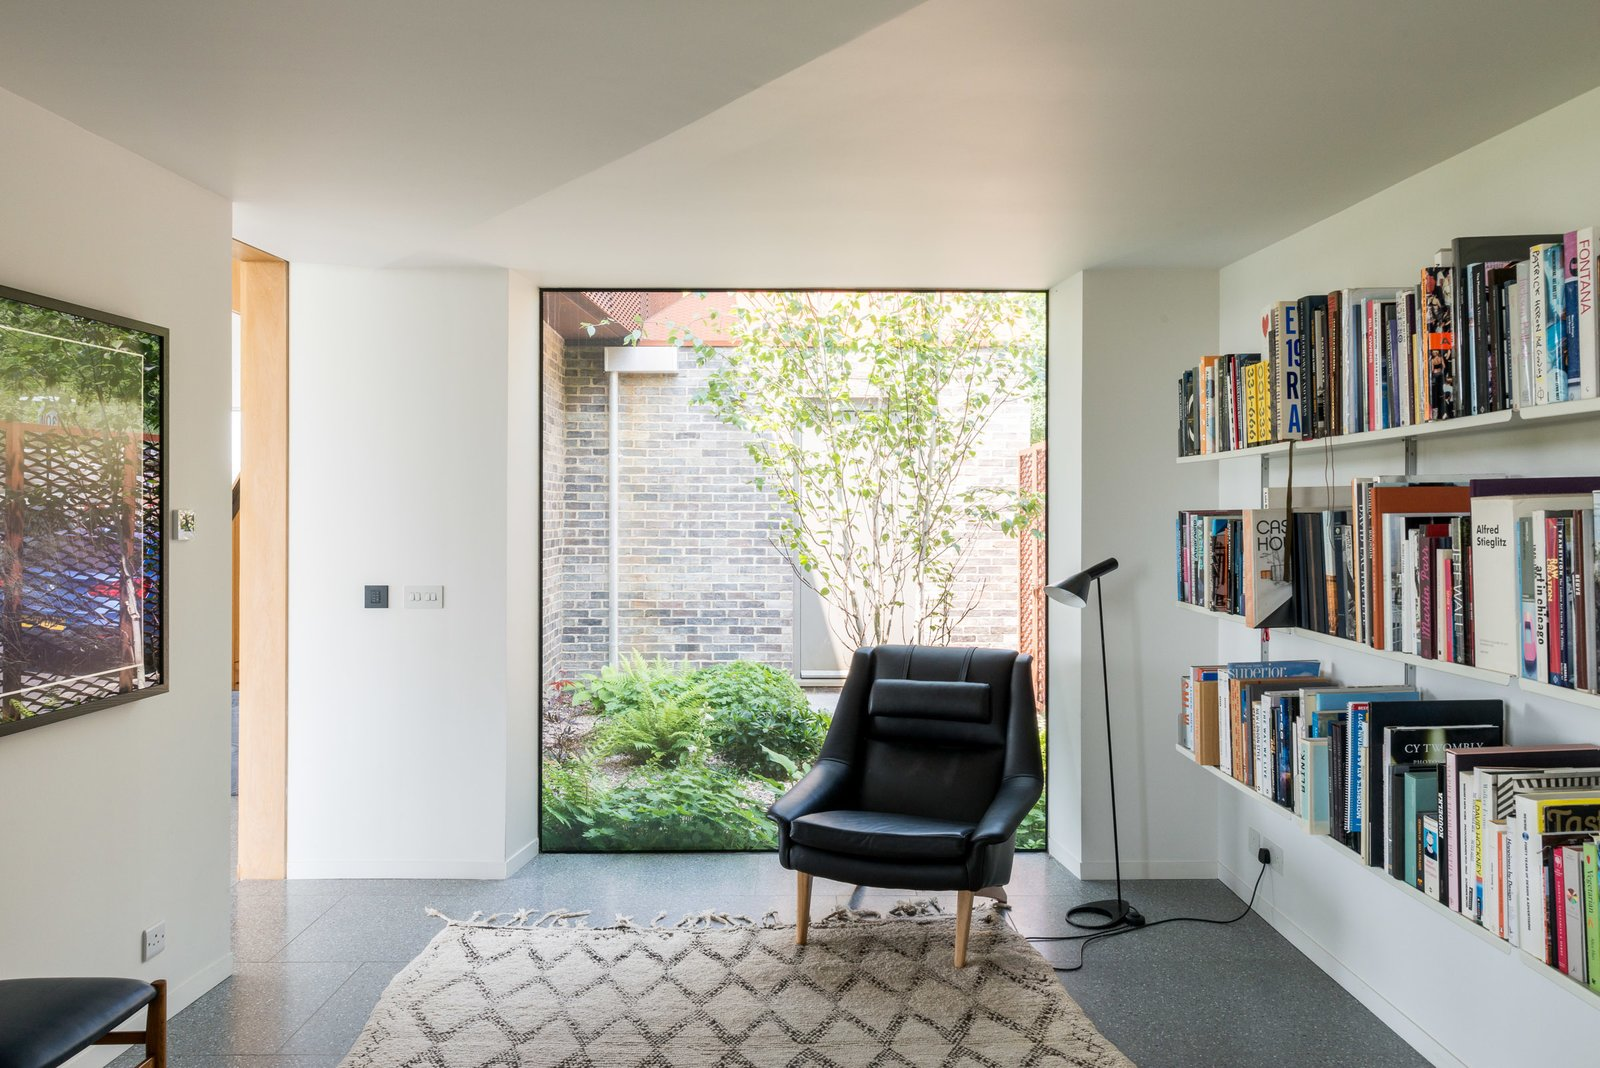 Office, Library, Chair, Lamps, and Terrazzo  Office Terrazzo Photos from Explore a Prefabricated House For Sale in England That's Clad With Cor-Ten Steel